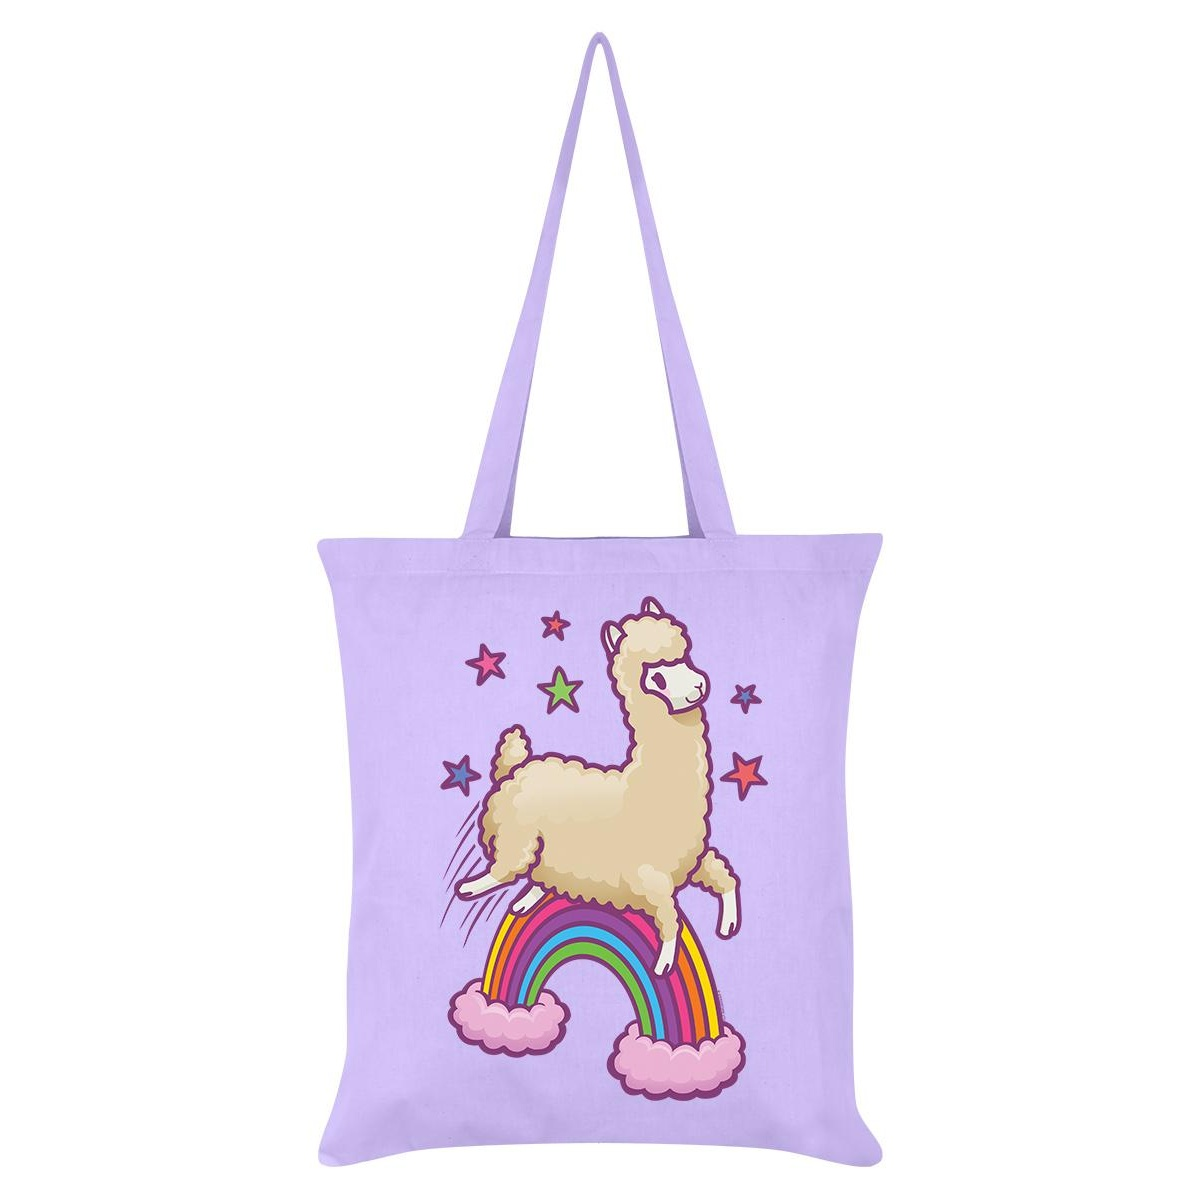 Grindstore Happy Space Llama Tote Bag (One Size) (Lilac)